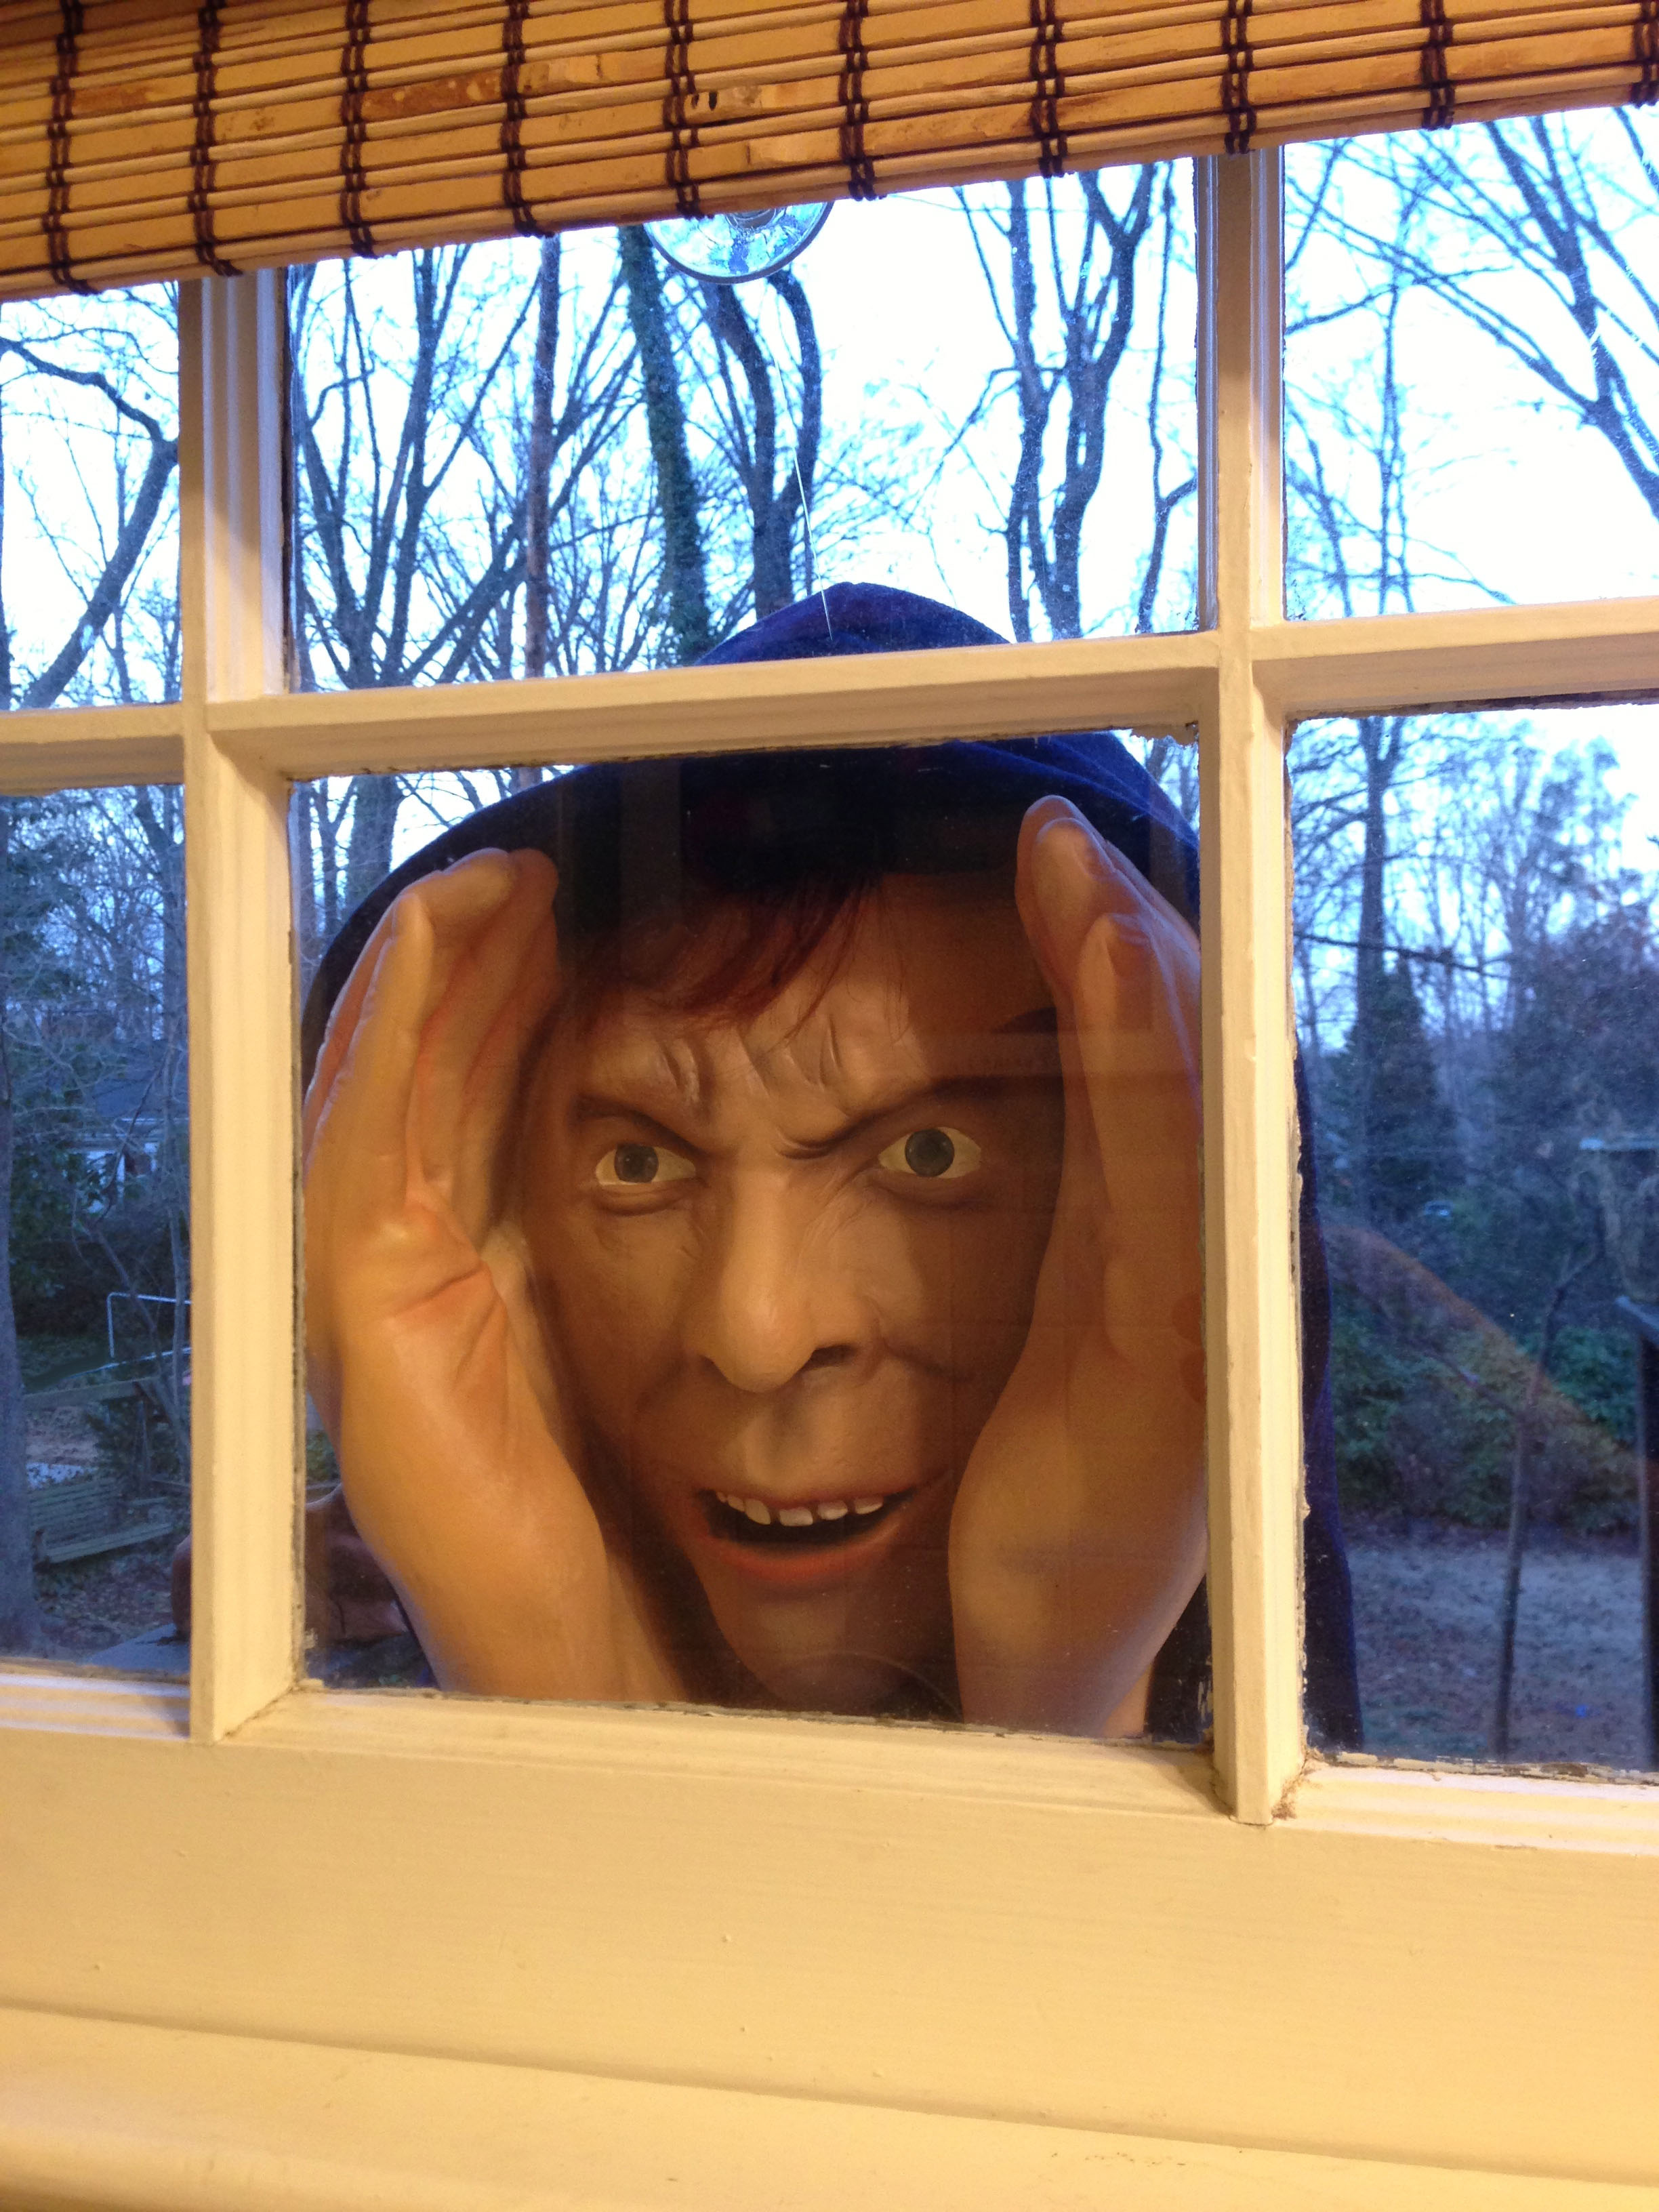 this halloween decoration was pulled from shops because it's too